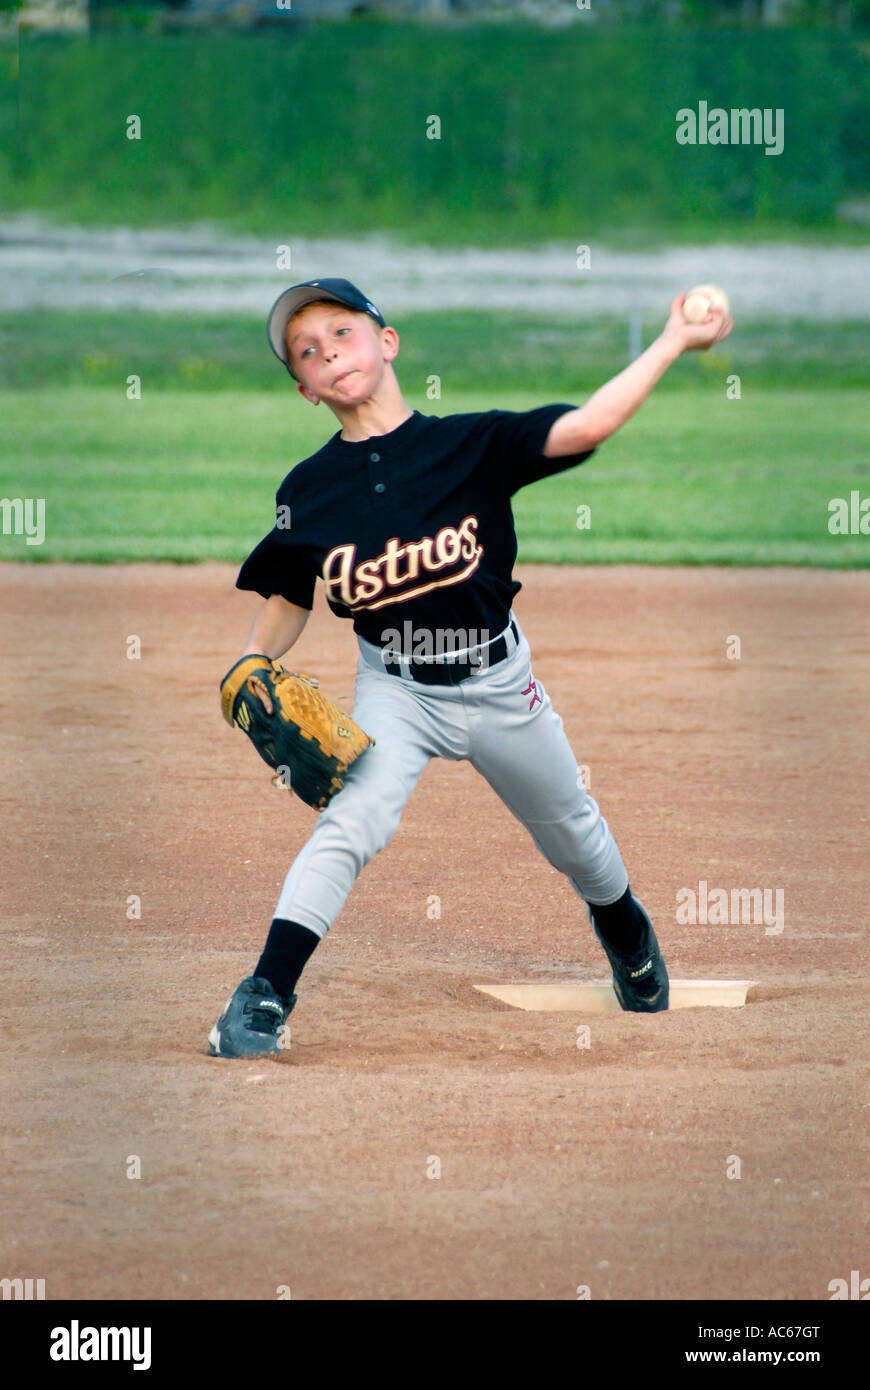 Little League Baseball Pitcher Throwing Imágenes De Stock & Little ...